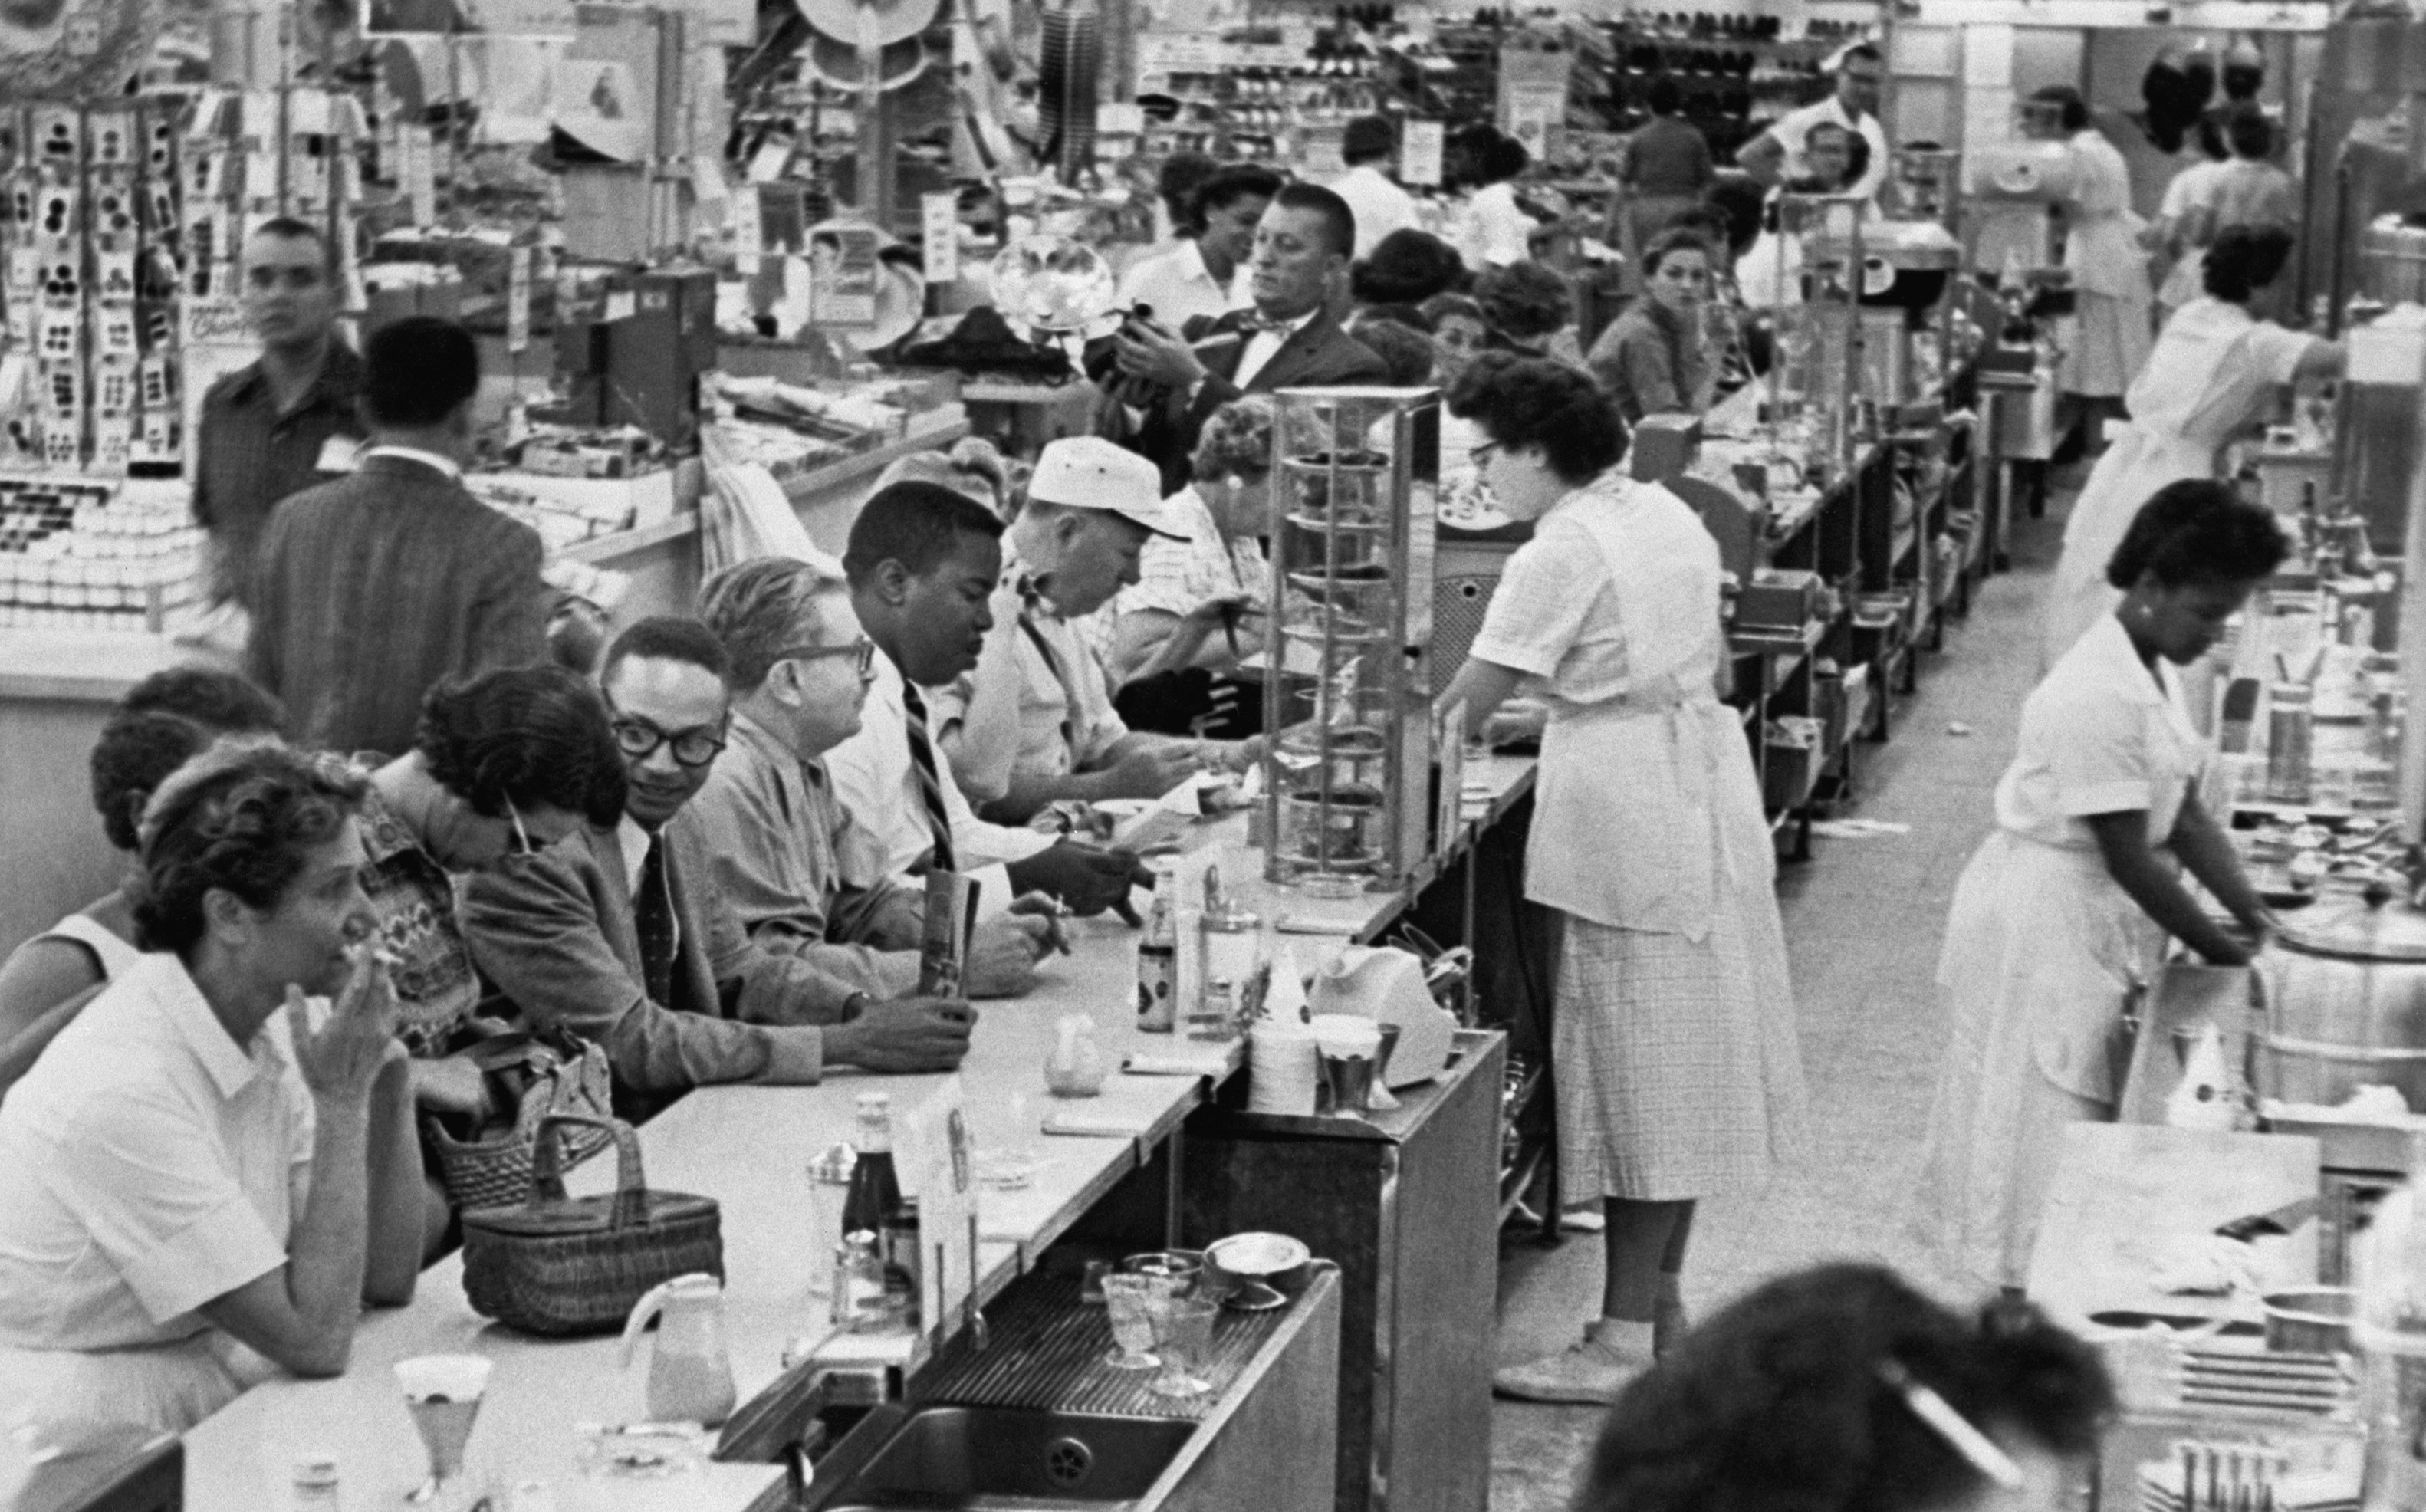 Waitresses refused to serve African Americans at a Miami store.